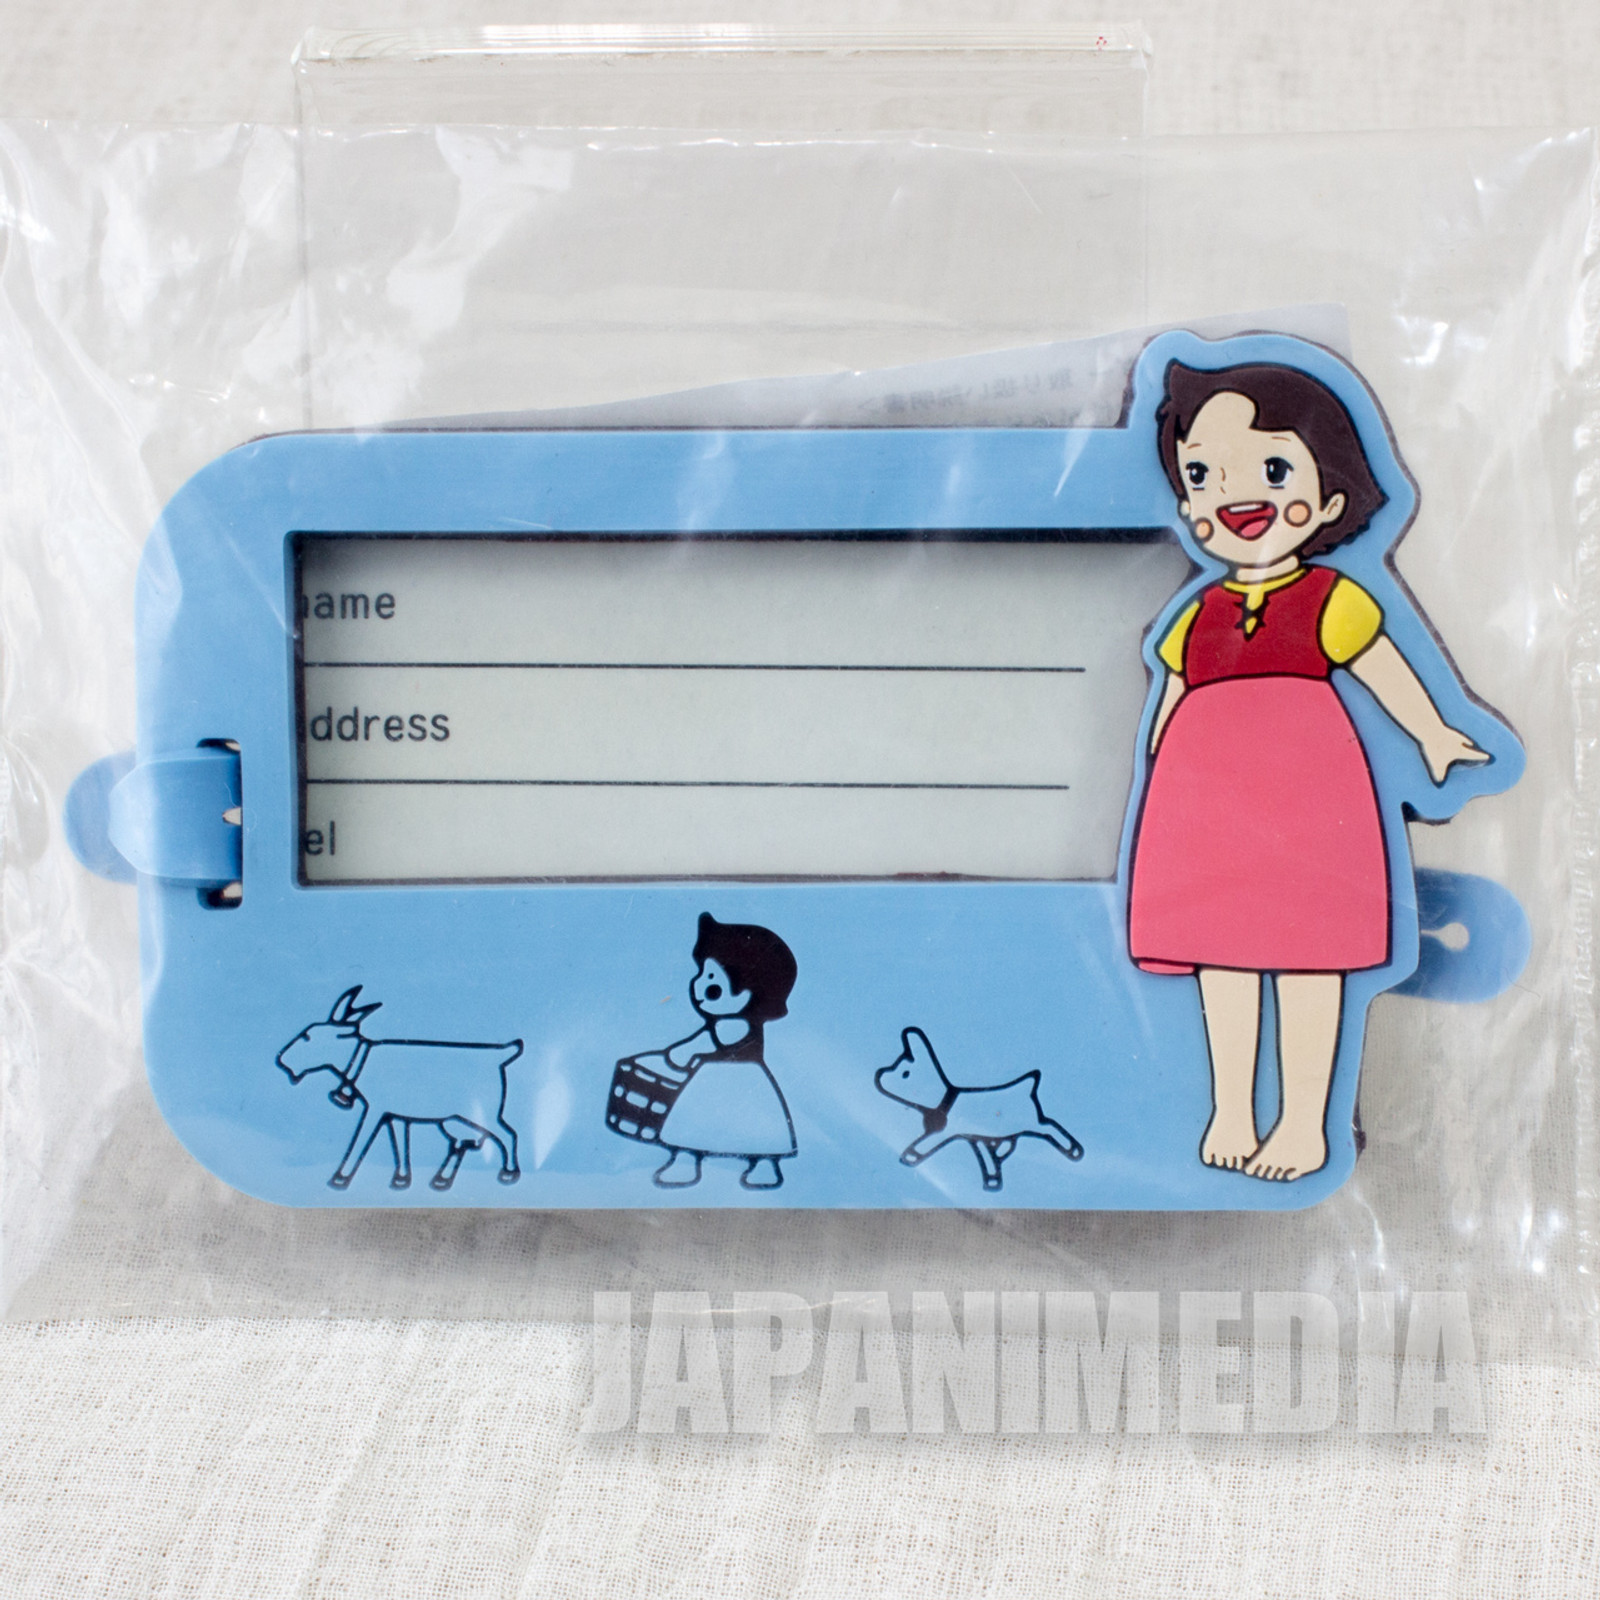 Heidi Girl of the Alps Rubber Name Plate Holder Blue JAPAN ANIME